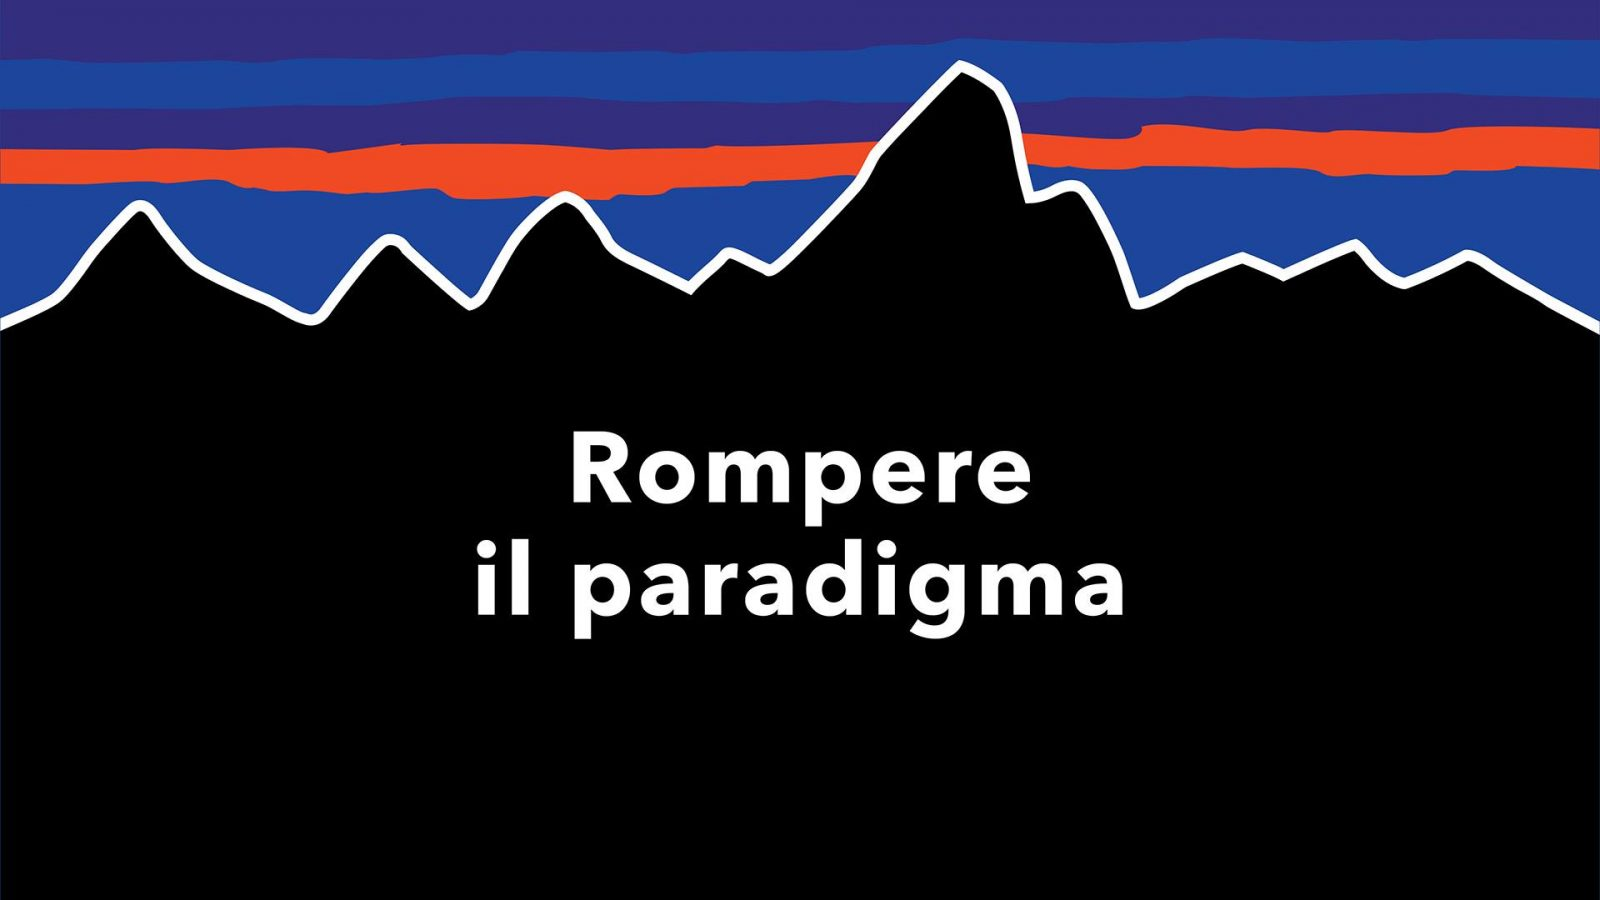 buy popular 7a351 608fe Rompere il paradigma - Larimeloom